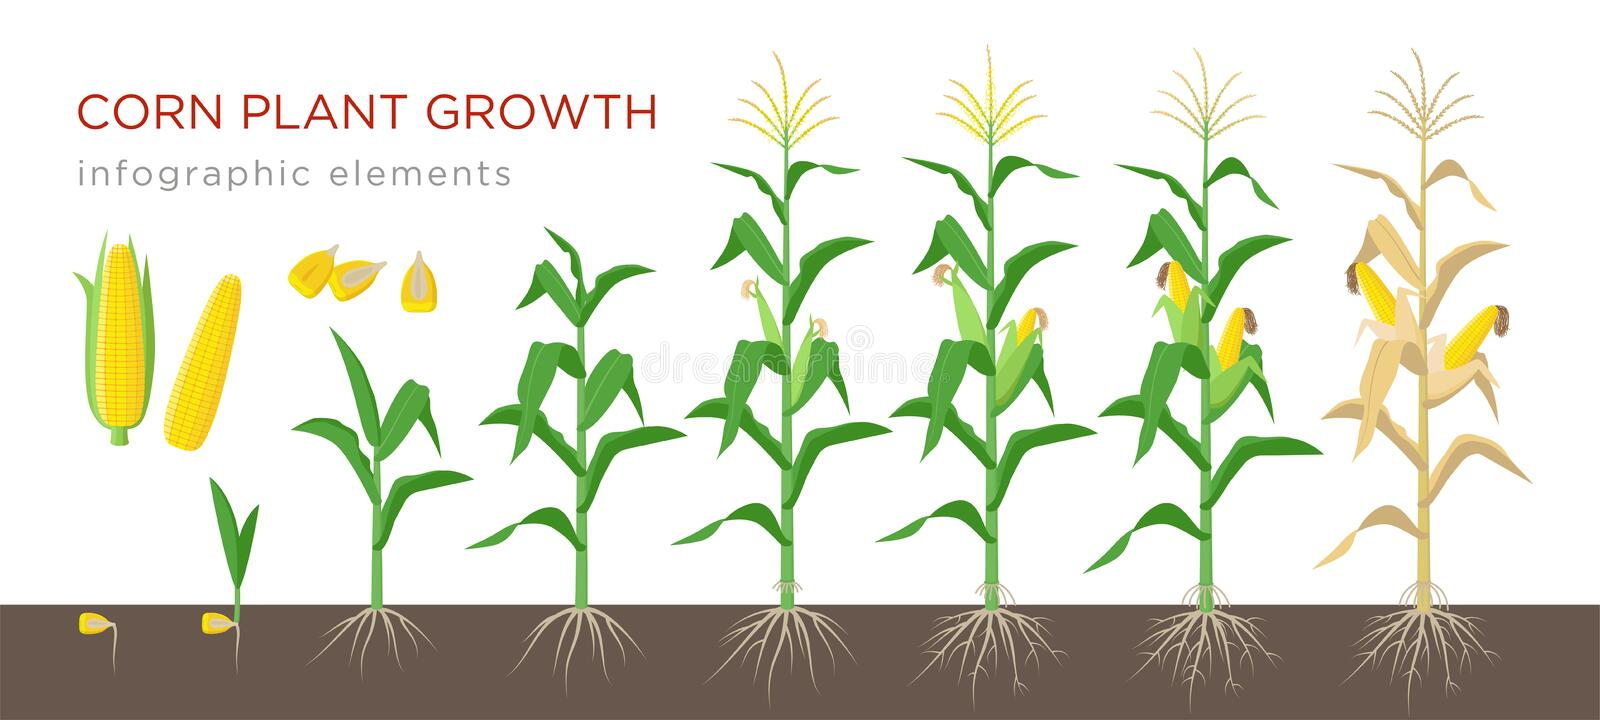 Corn growing stages vector illustration in flat design. Planting process of corn plant. Maize growth from grain to royalty free illustration